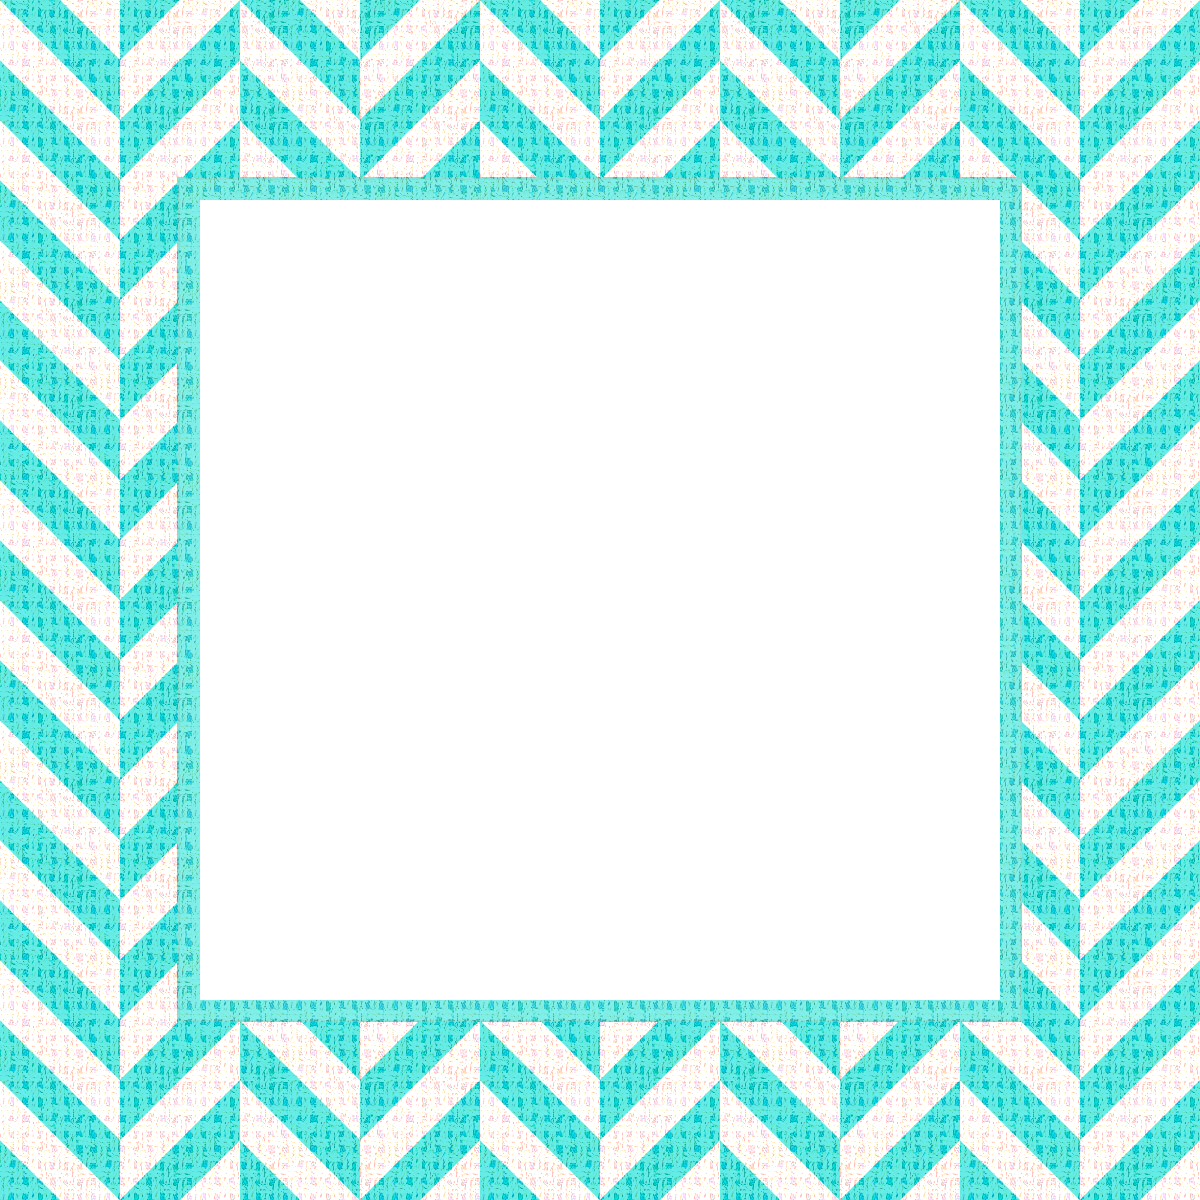 Chevron Border Transparent Background